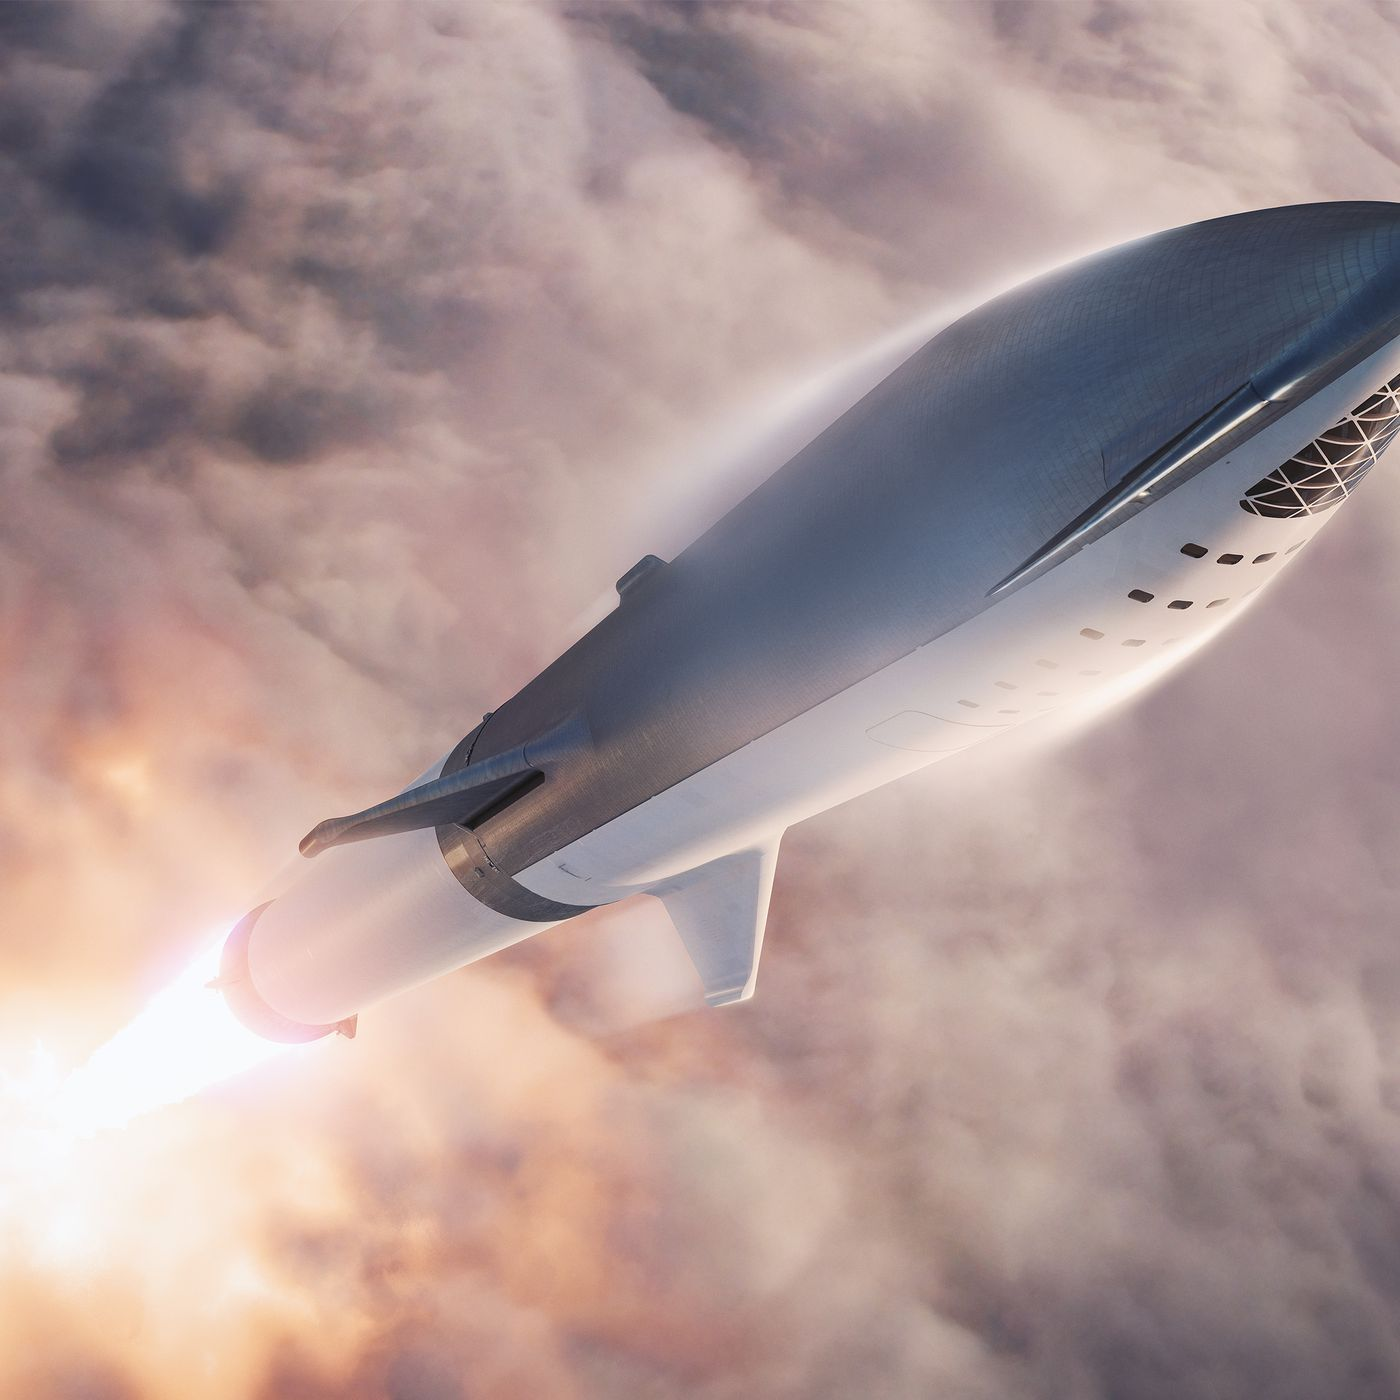 theverge.com - Loren Grush - SpaceX's Starhopper moves closer to its first flight